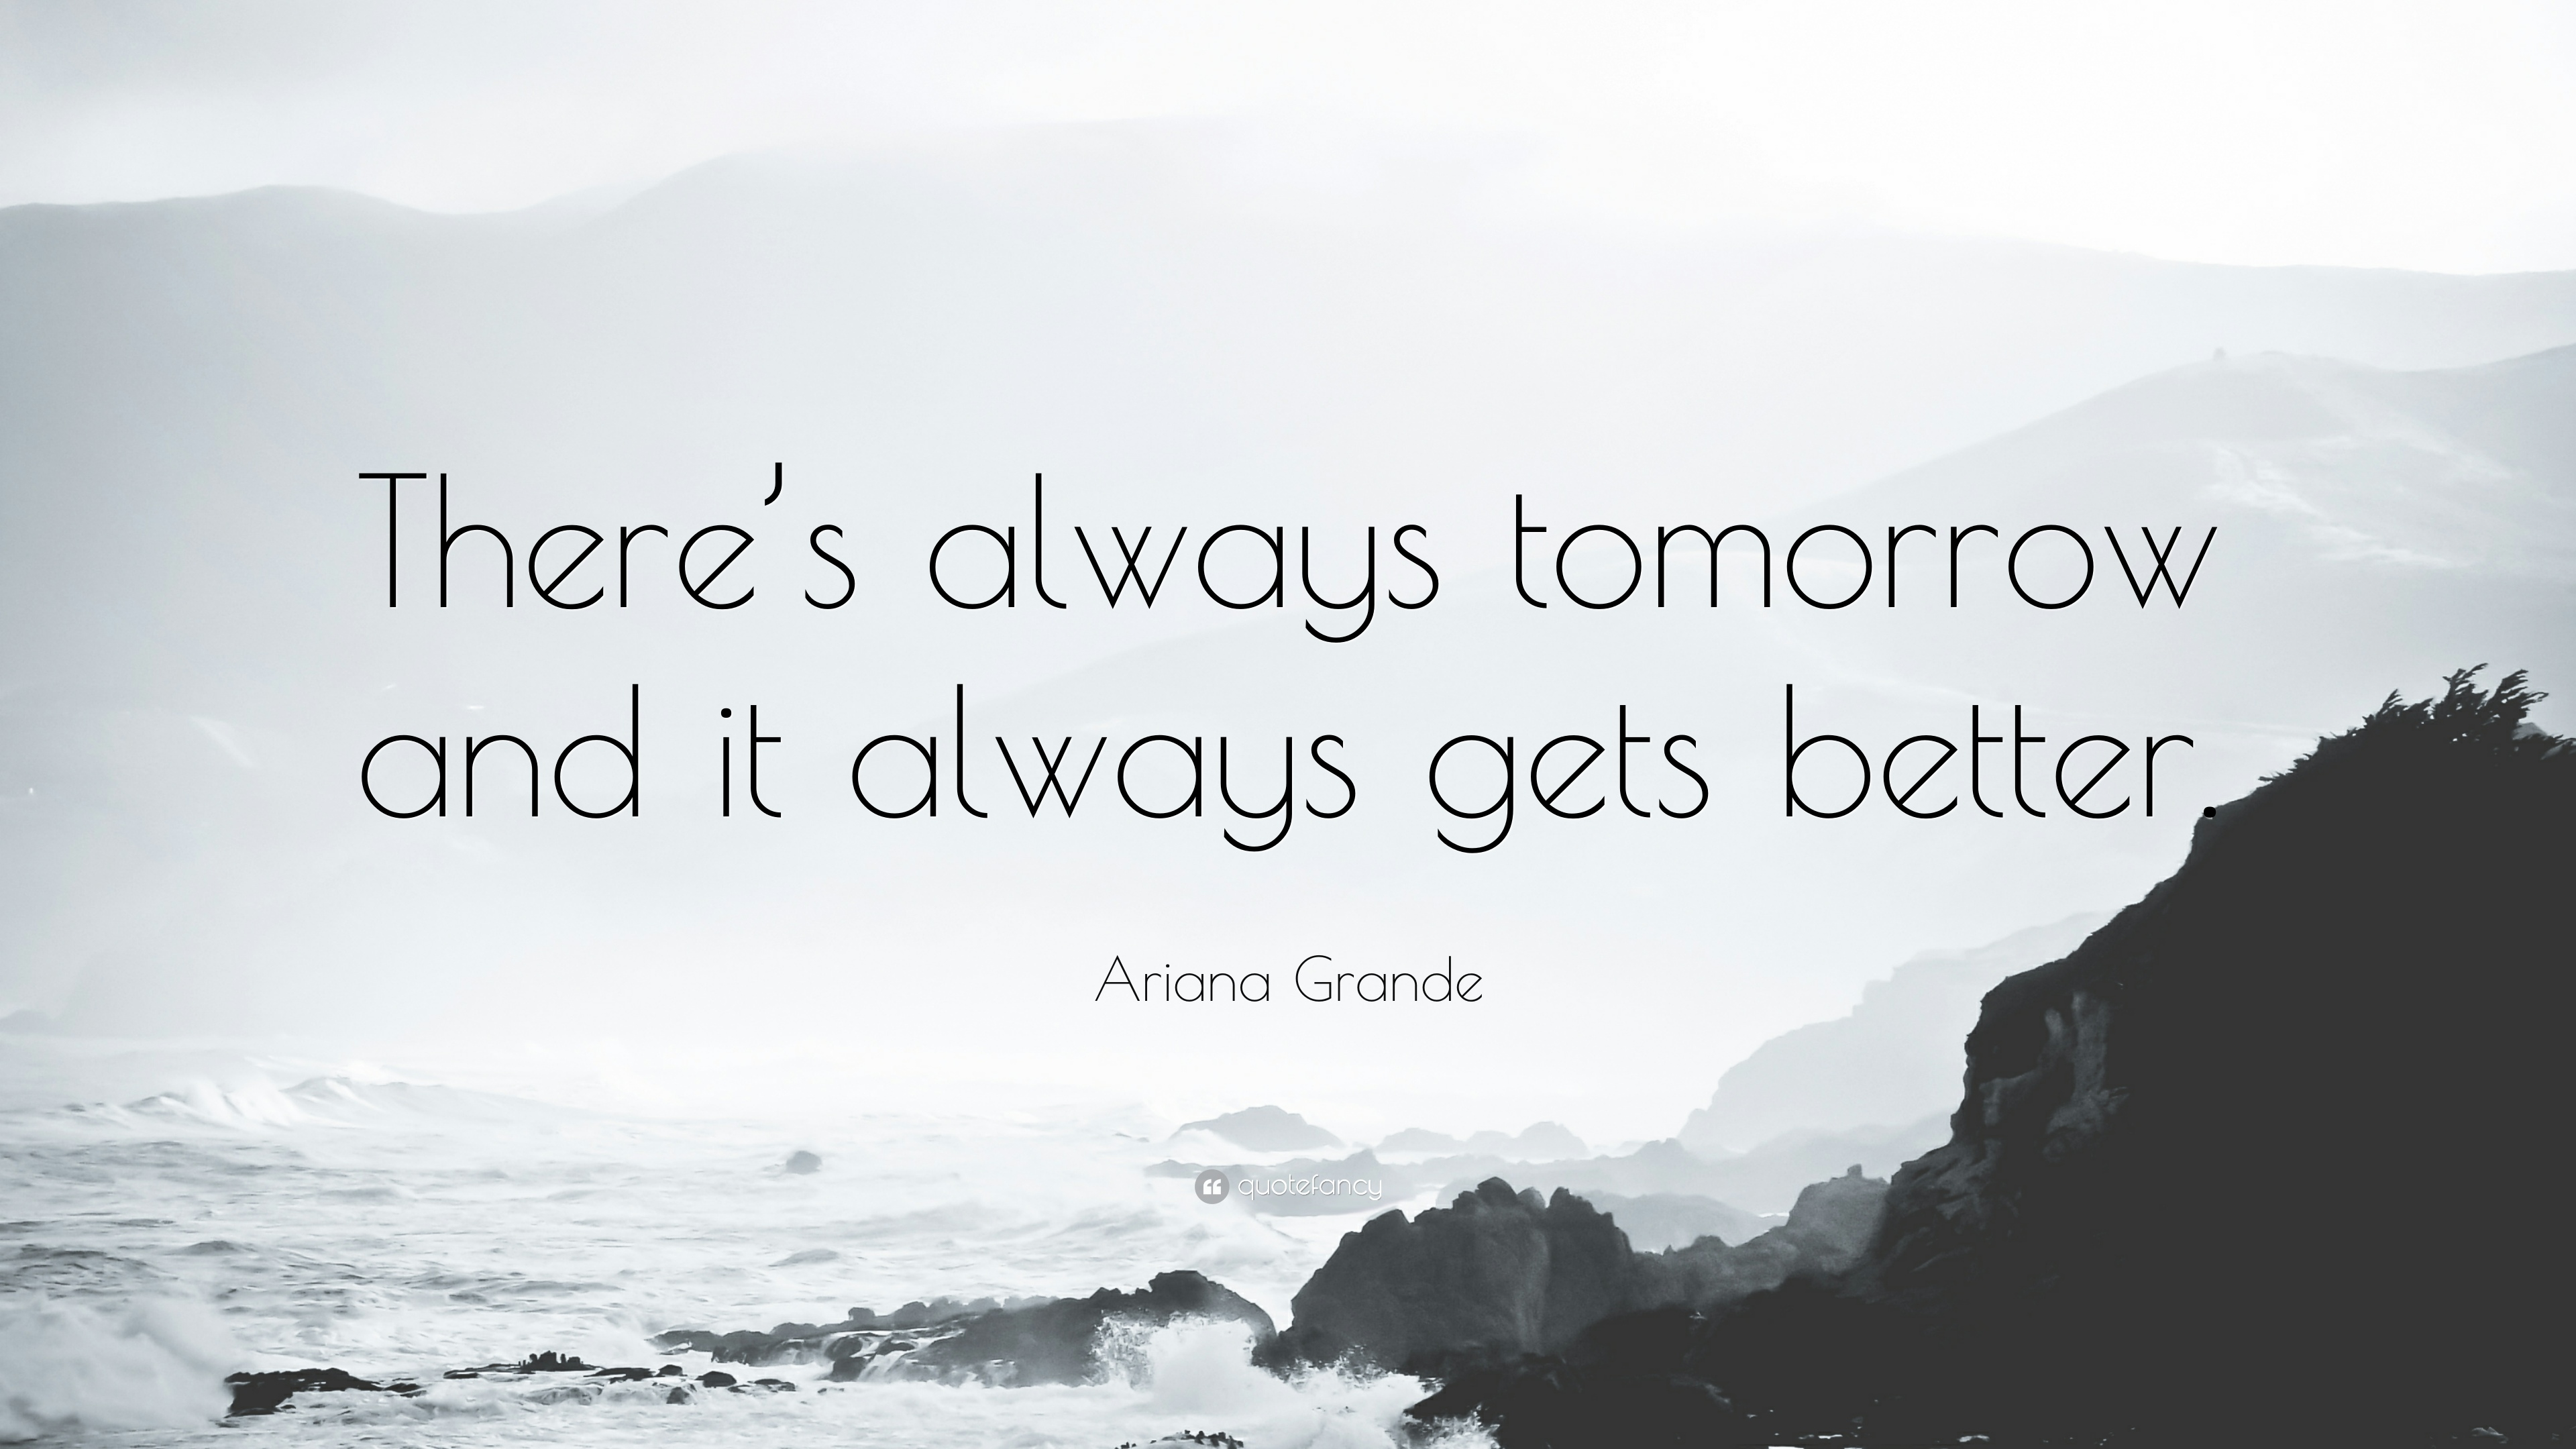 Ariana Grande Quotes (65 wallpapers) - Quotefancy